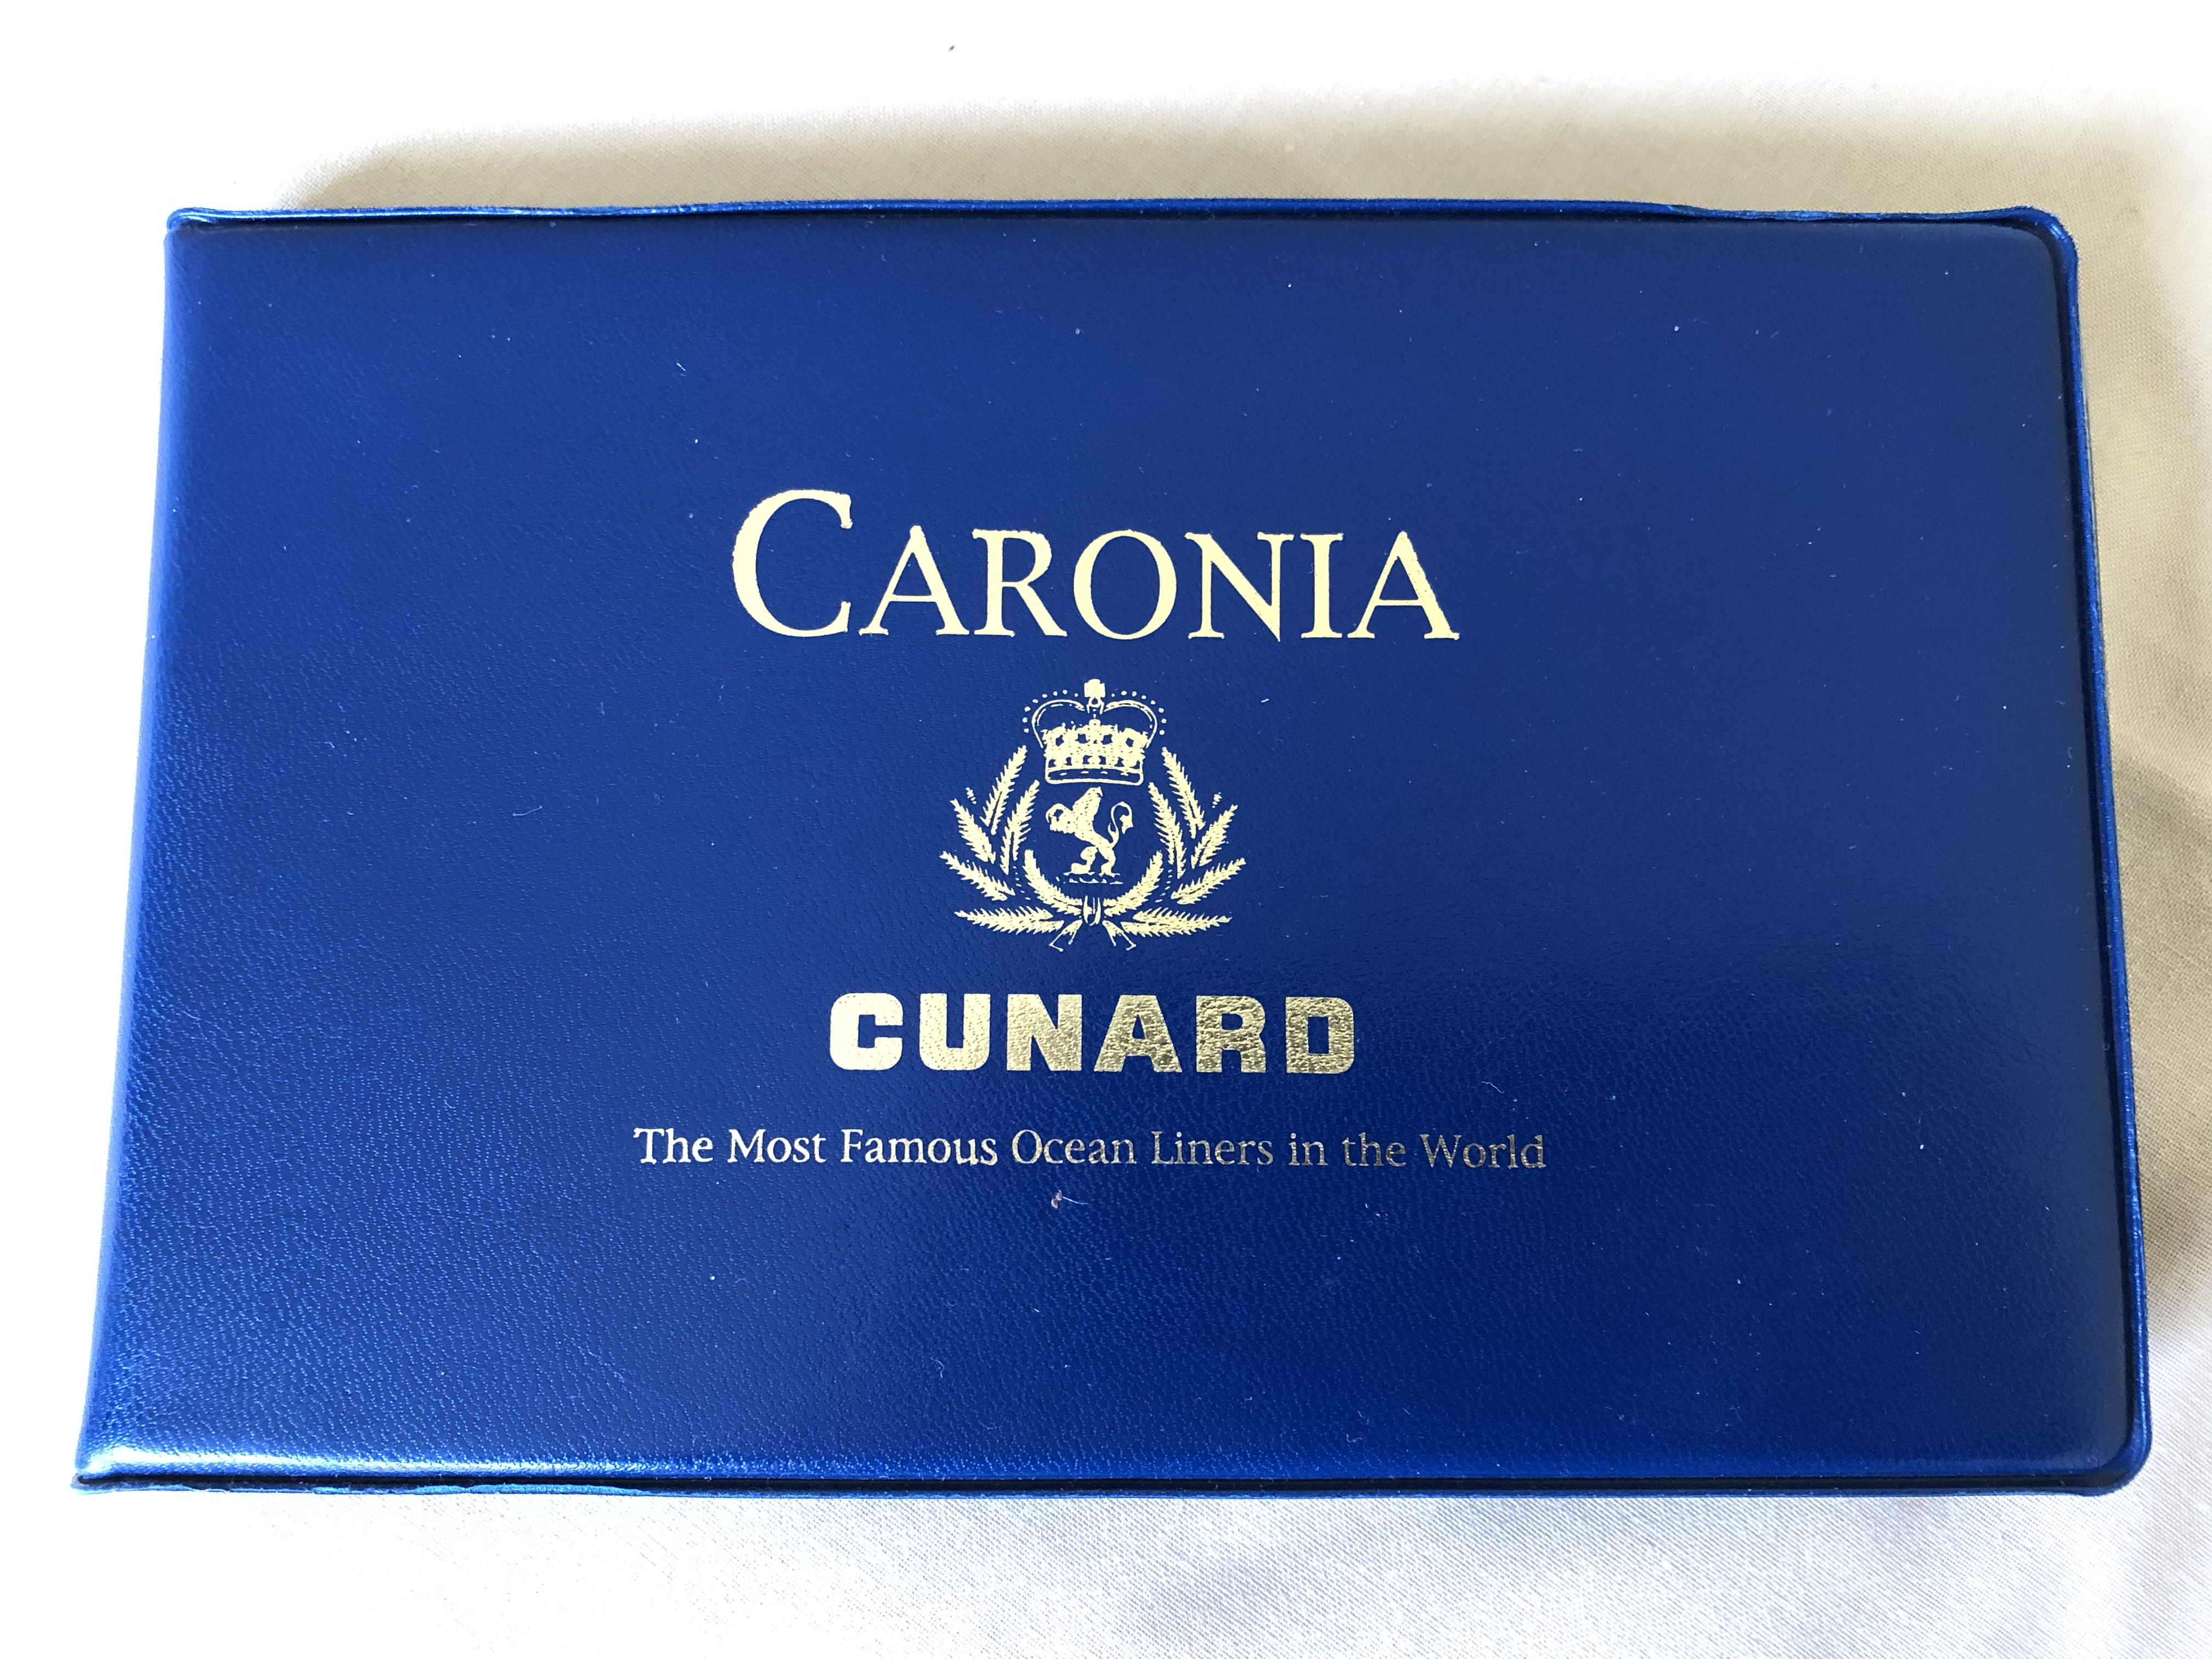 FANTASTIC SET OF ORIGINAL COLOUR PHOTOGRAHS FROM THE OLD CUNARD LINE VESSEL THE CARONIA